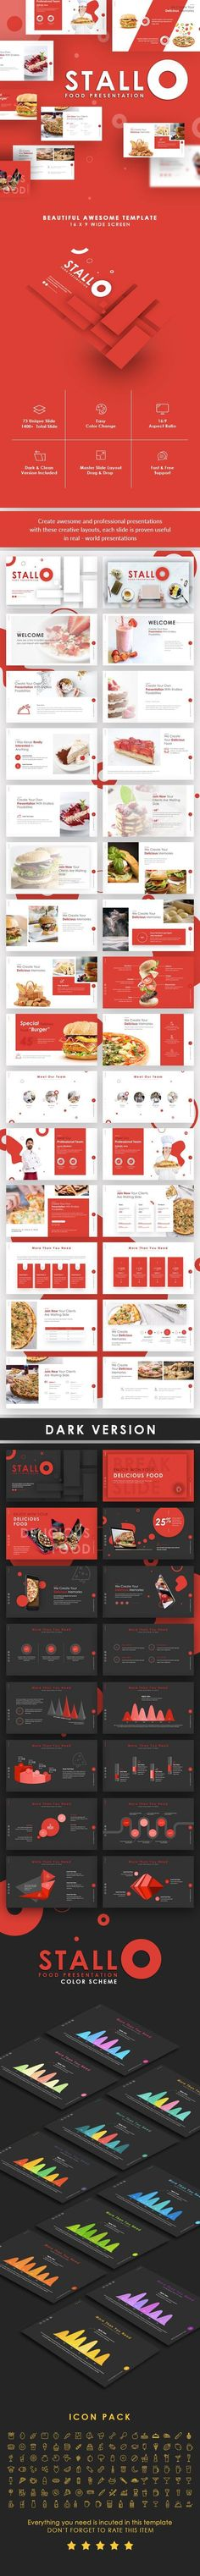 Buy Stallo Food Presentation Template by Slidesignus on GraphicRiver. Description : The best templates for your food business types, minimalist, elegant, and certainly professional, so yo. Creative Powerpoint Templates, Best Templates, Powerpoint Presentation Templates, Keynote Template, Design Templates, Presentation Design Template, Presentation Slides, Text Pictures, Light In The Dark